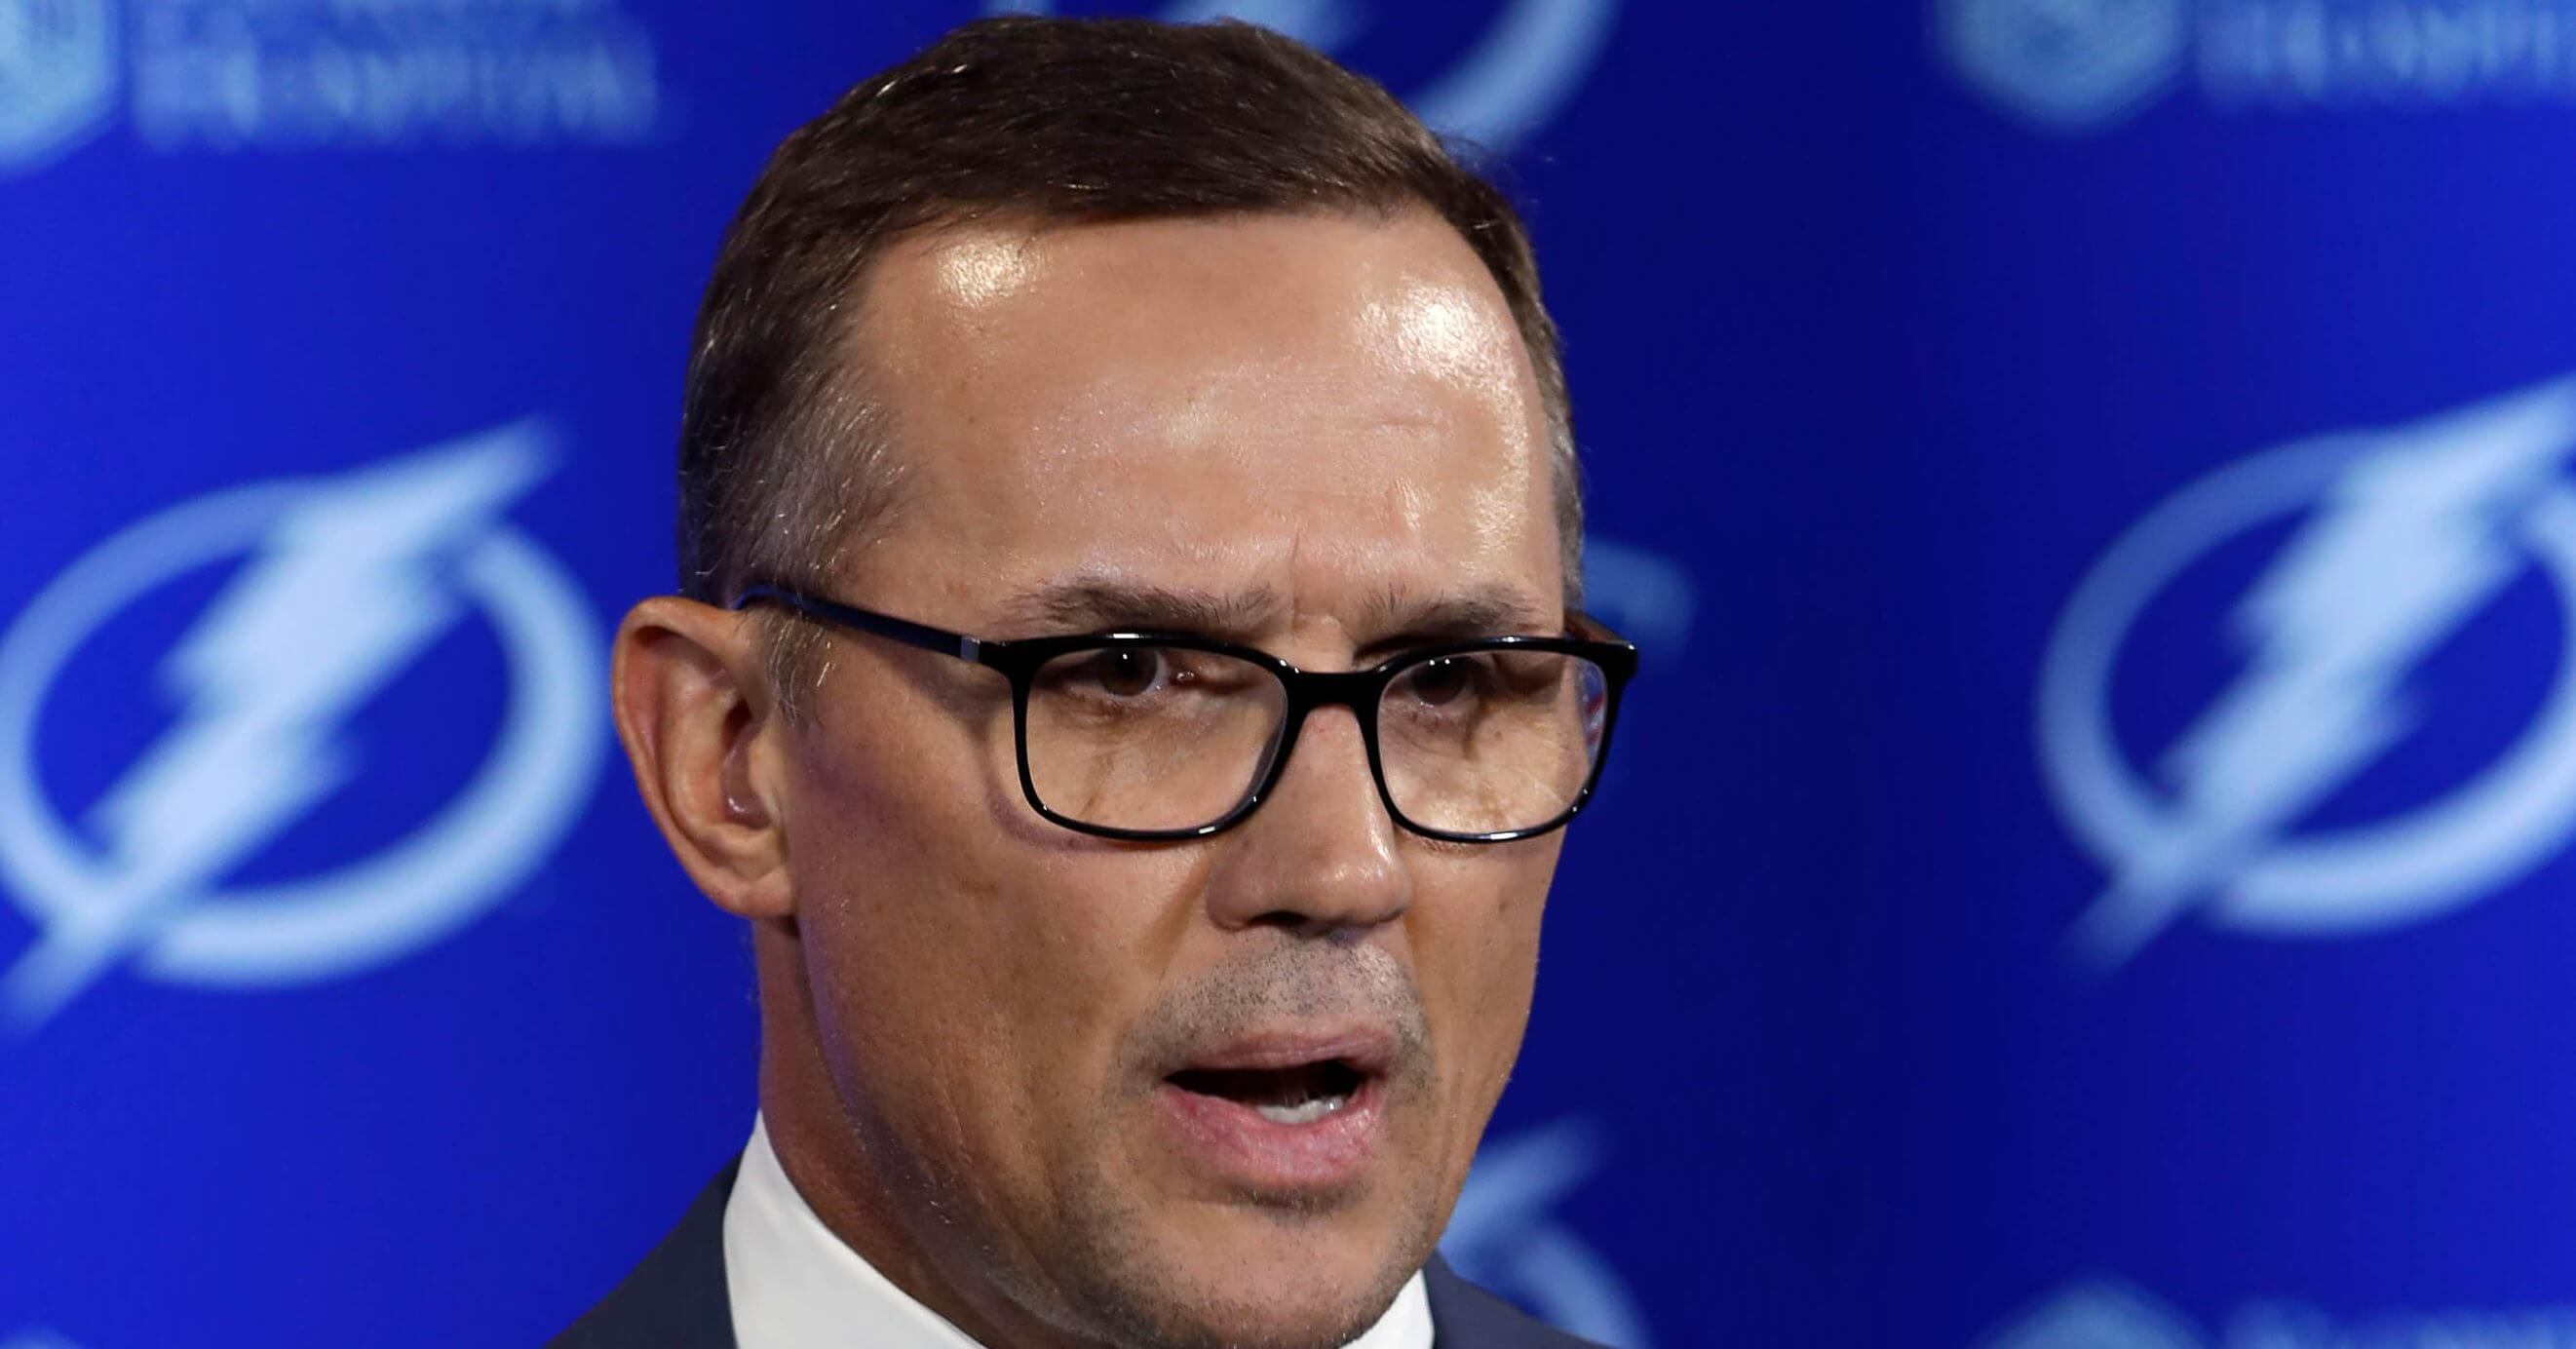 In this Feb. 26 photo, Tampa Bay Lightning general manager Steve Yzerman gestures during a news conference before an NHL hockey game against the Toronto Maple Leafs in Tampa, Florida.